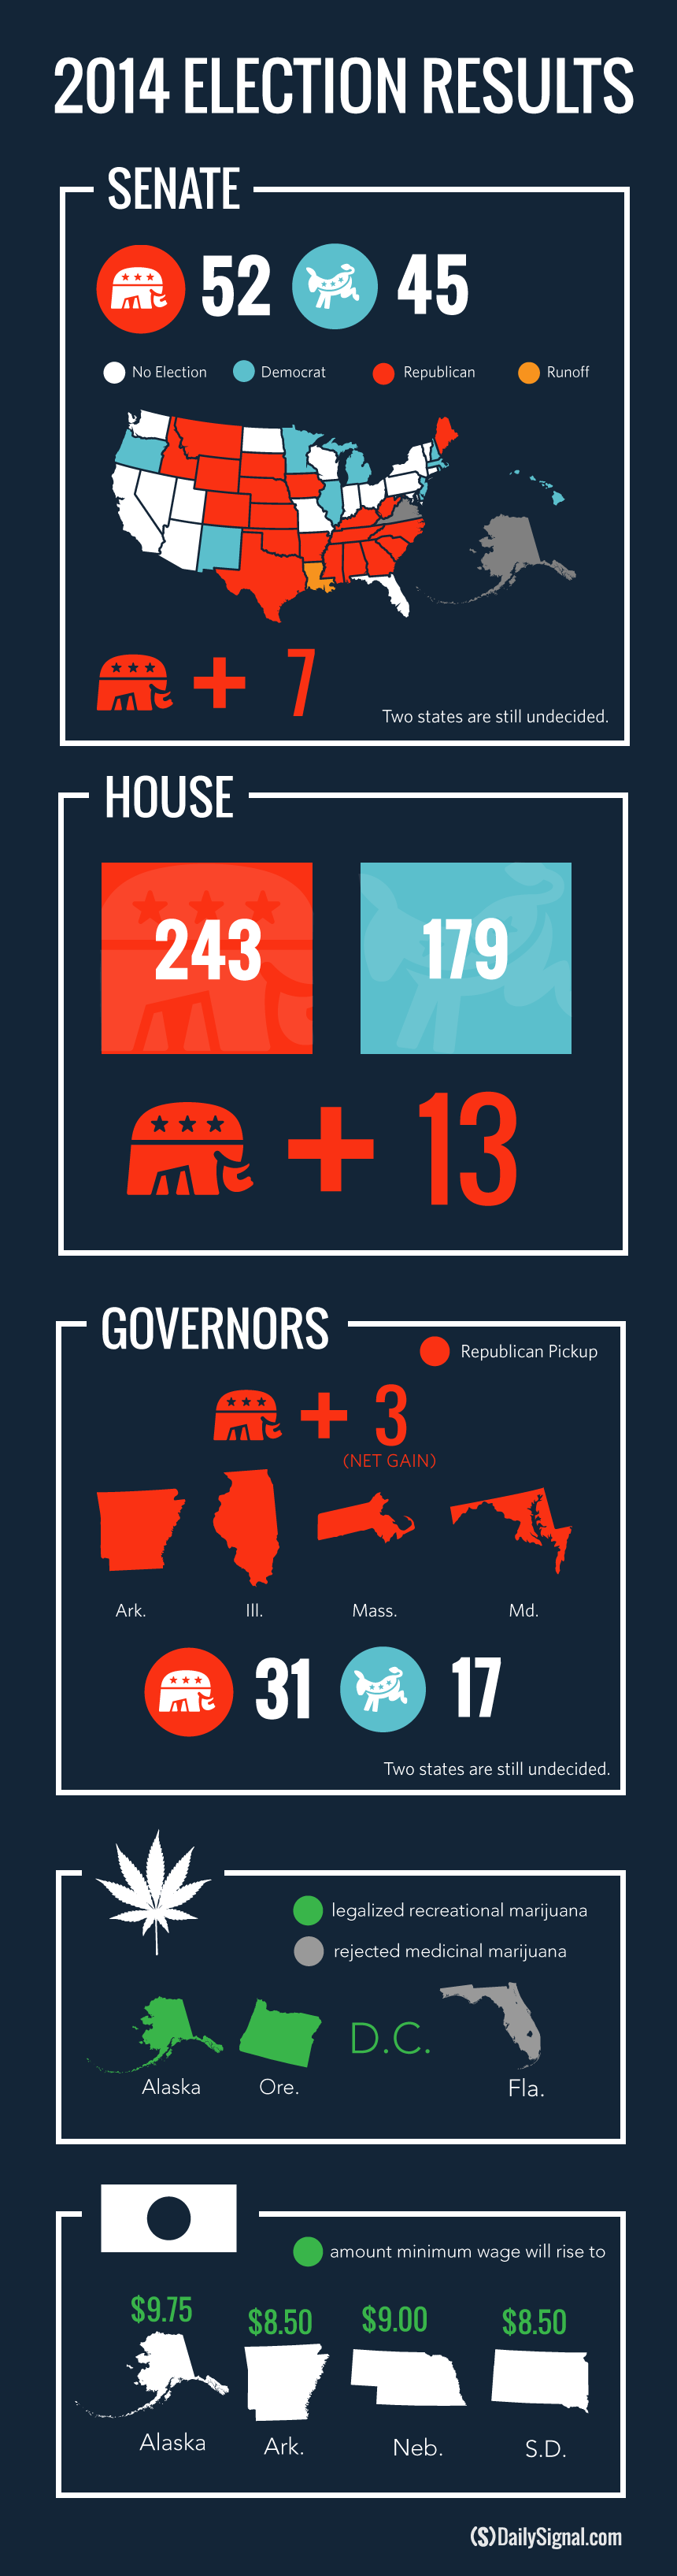 Infographic by Kelsey Harris of The Daily Signal